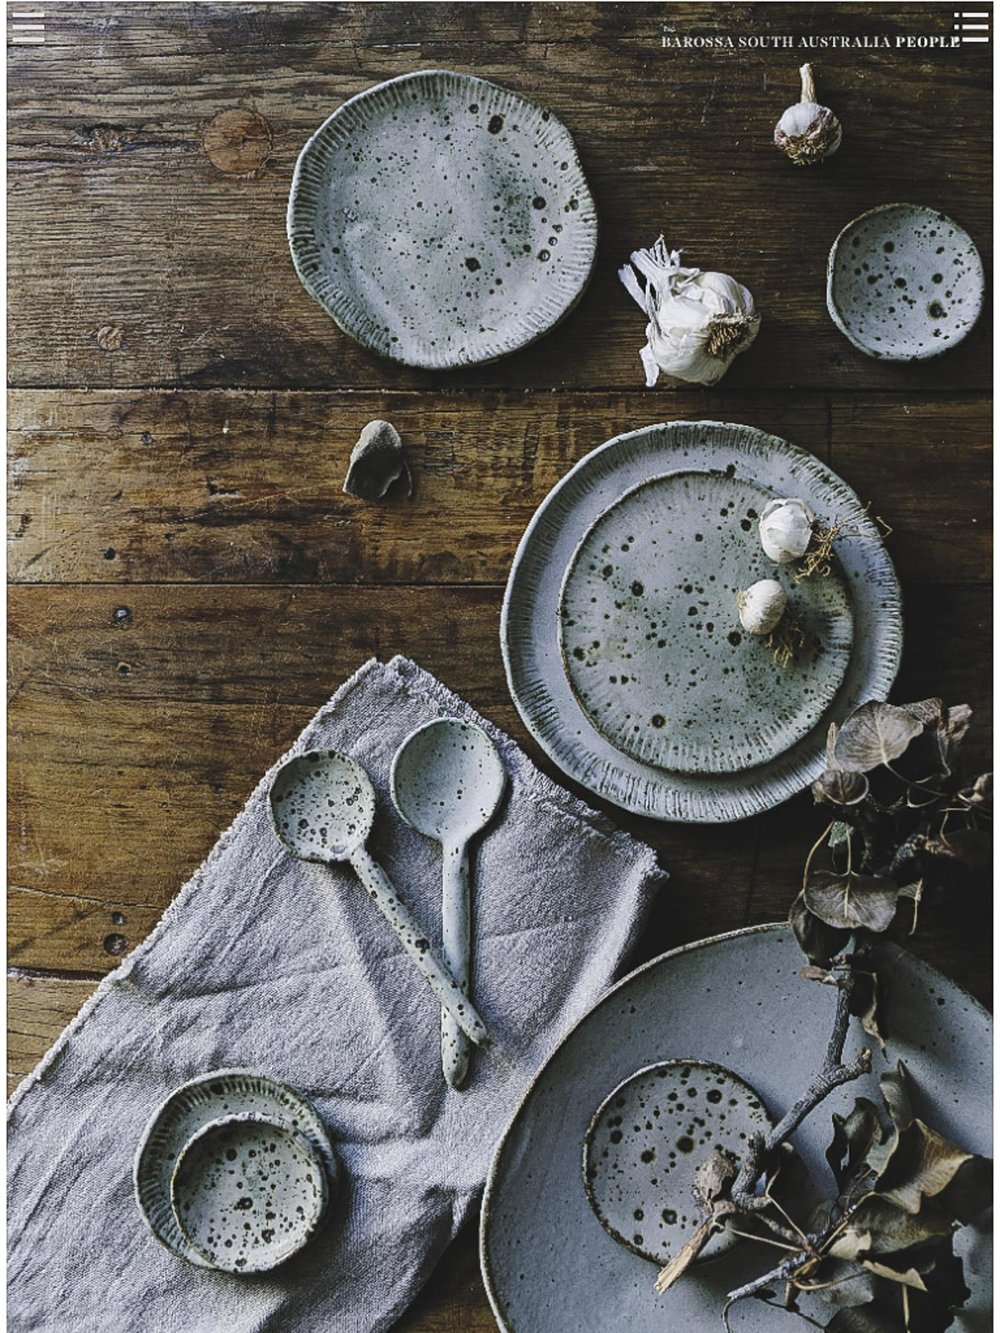 Marnie Hawson, Melbourne ethical photographer for Otti Made and Country Style magazine